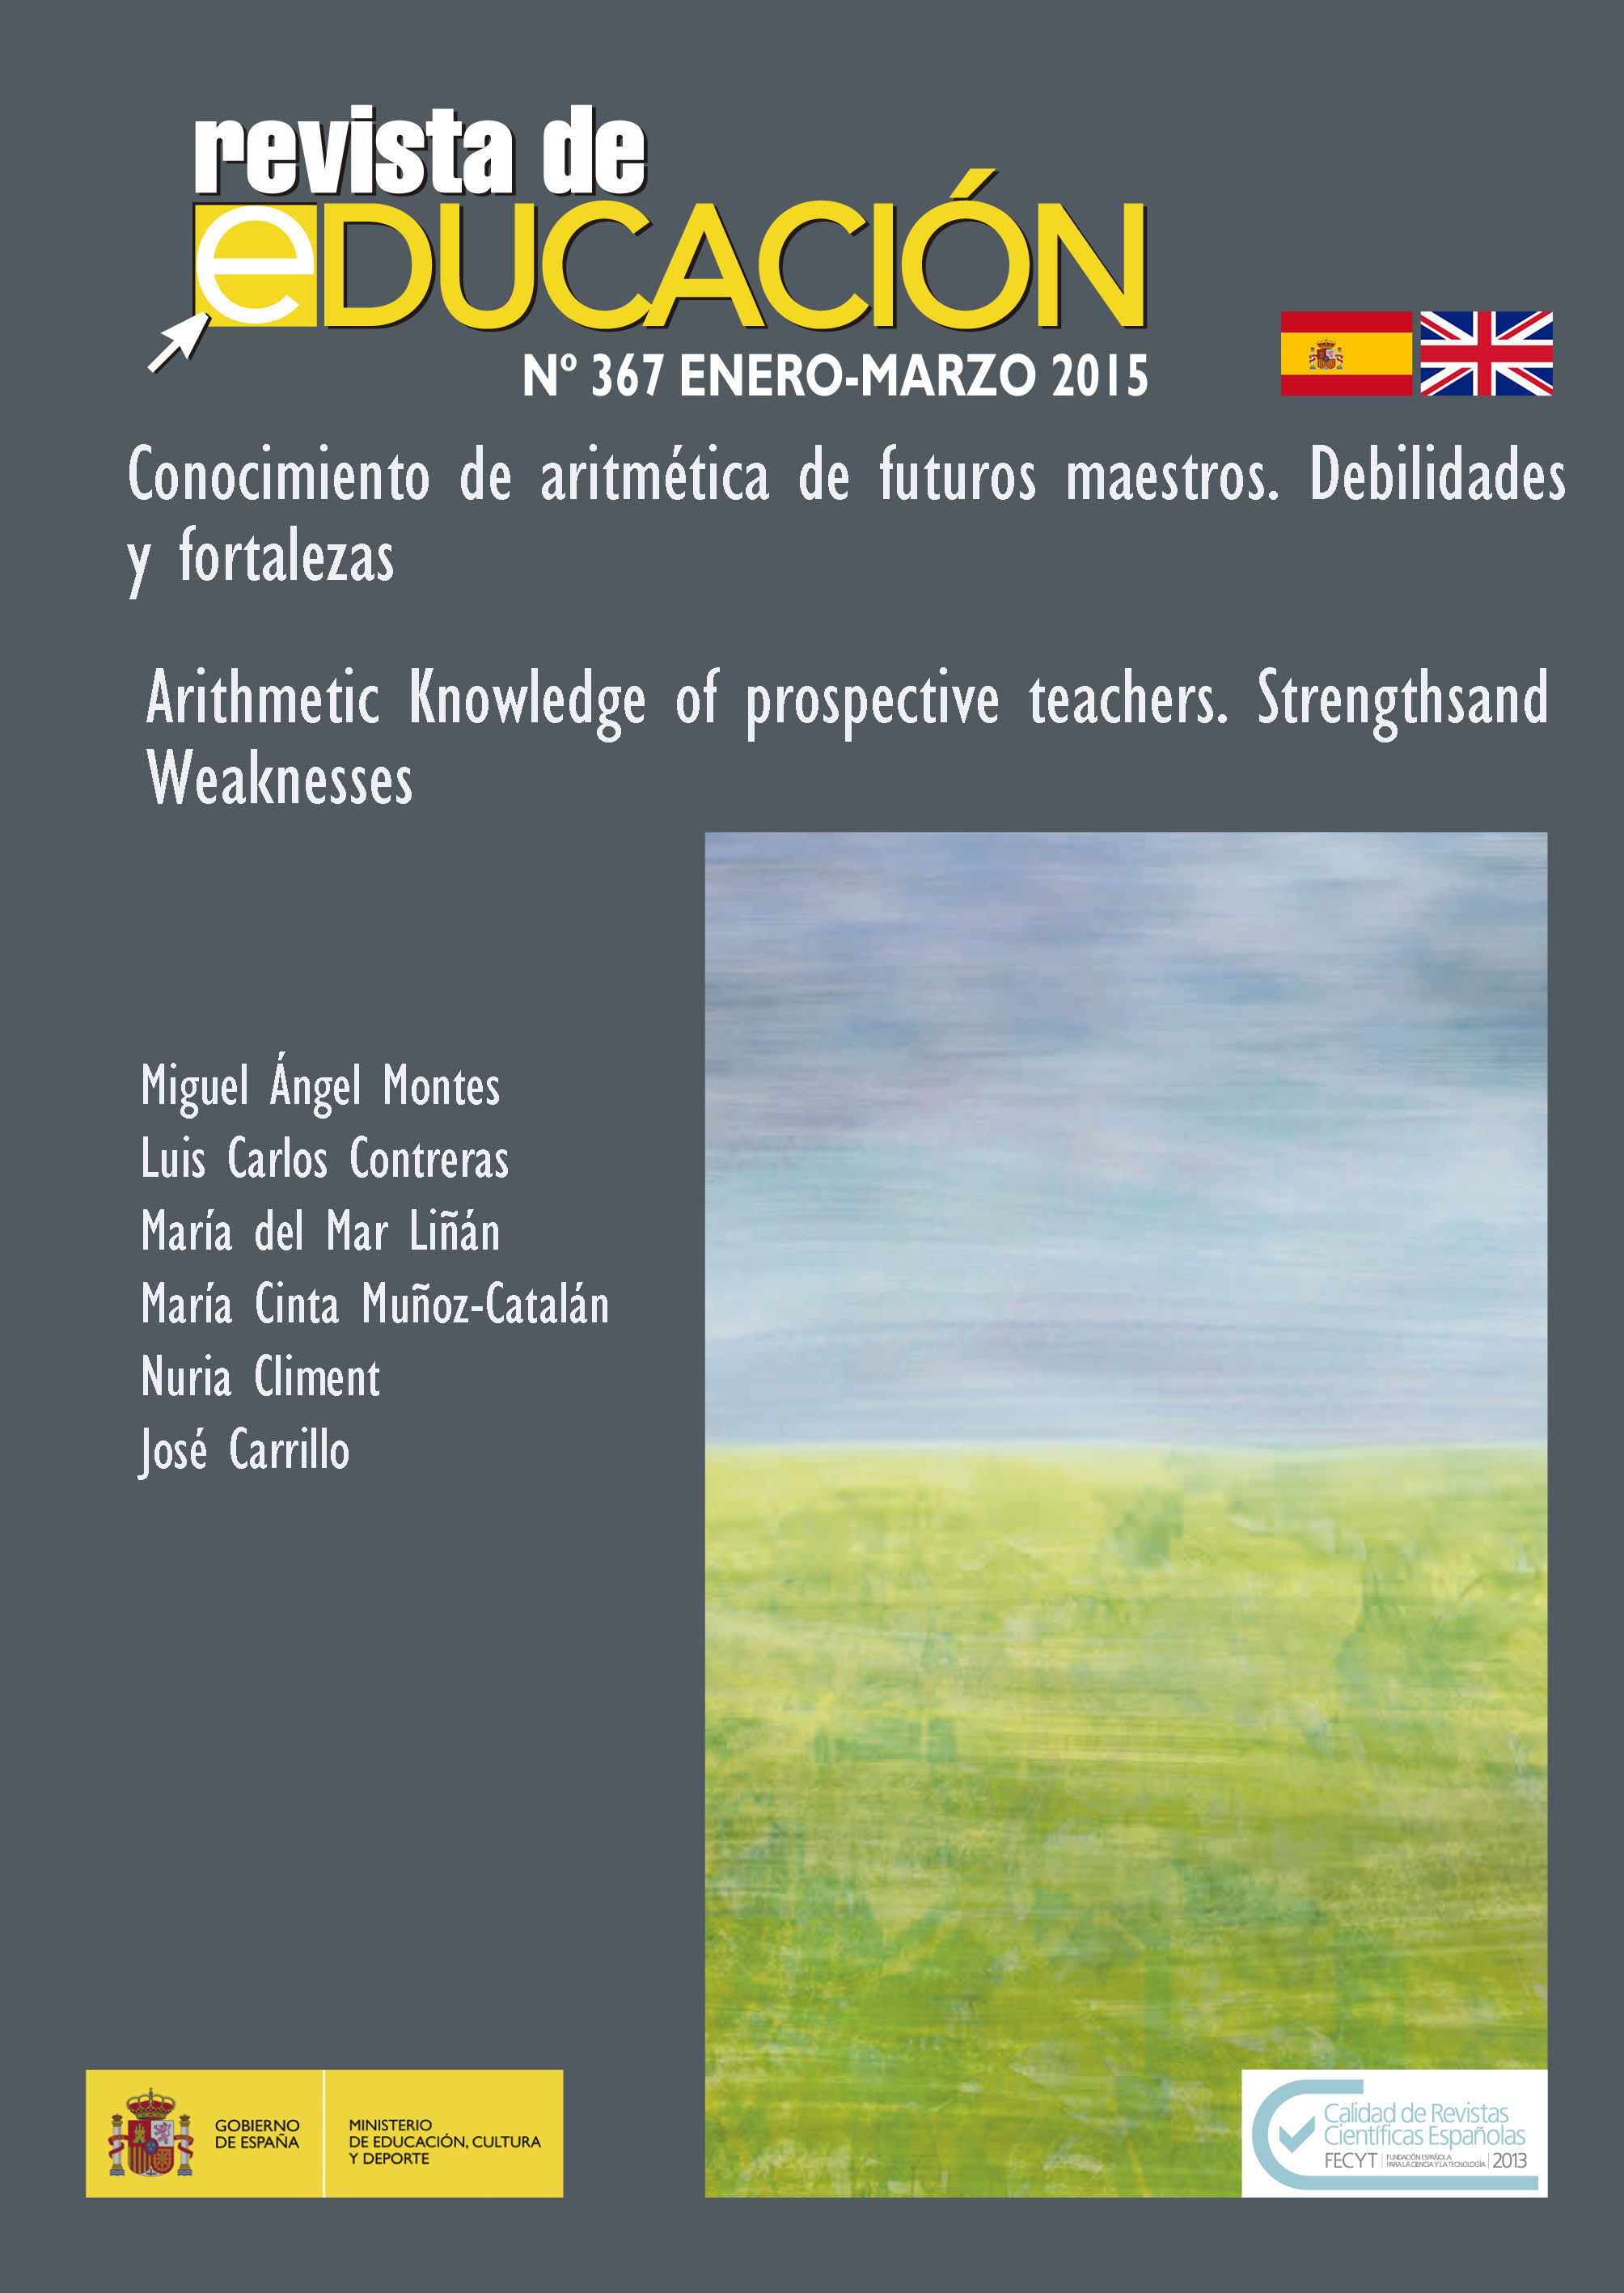 conocimiento-de-aritmetica-de-futuros-maestros-debilidades-y-fortalezas--arithmetic-knowledge-of-prospective-teachers-strengths-and-weaknesses